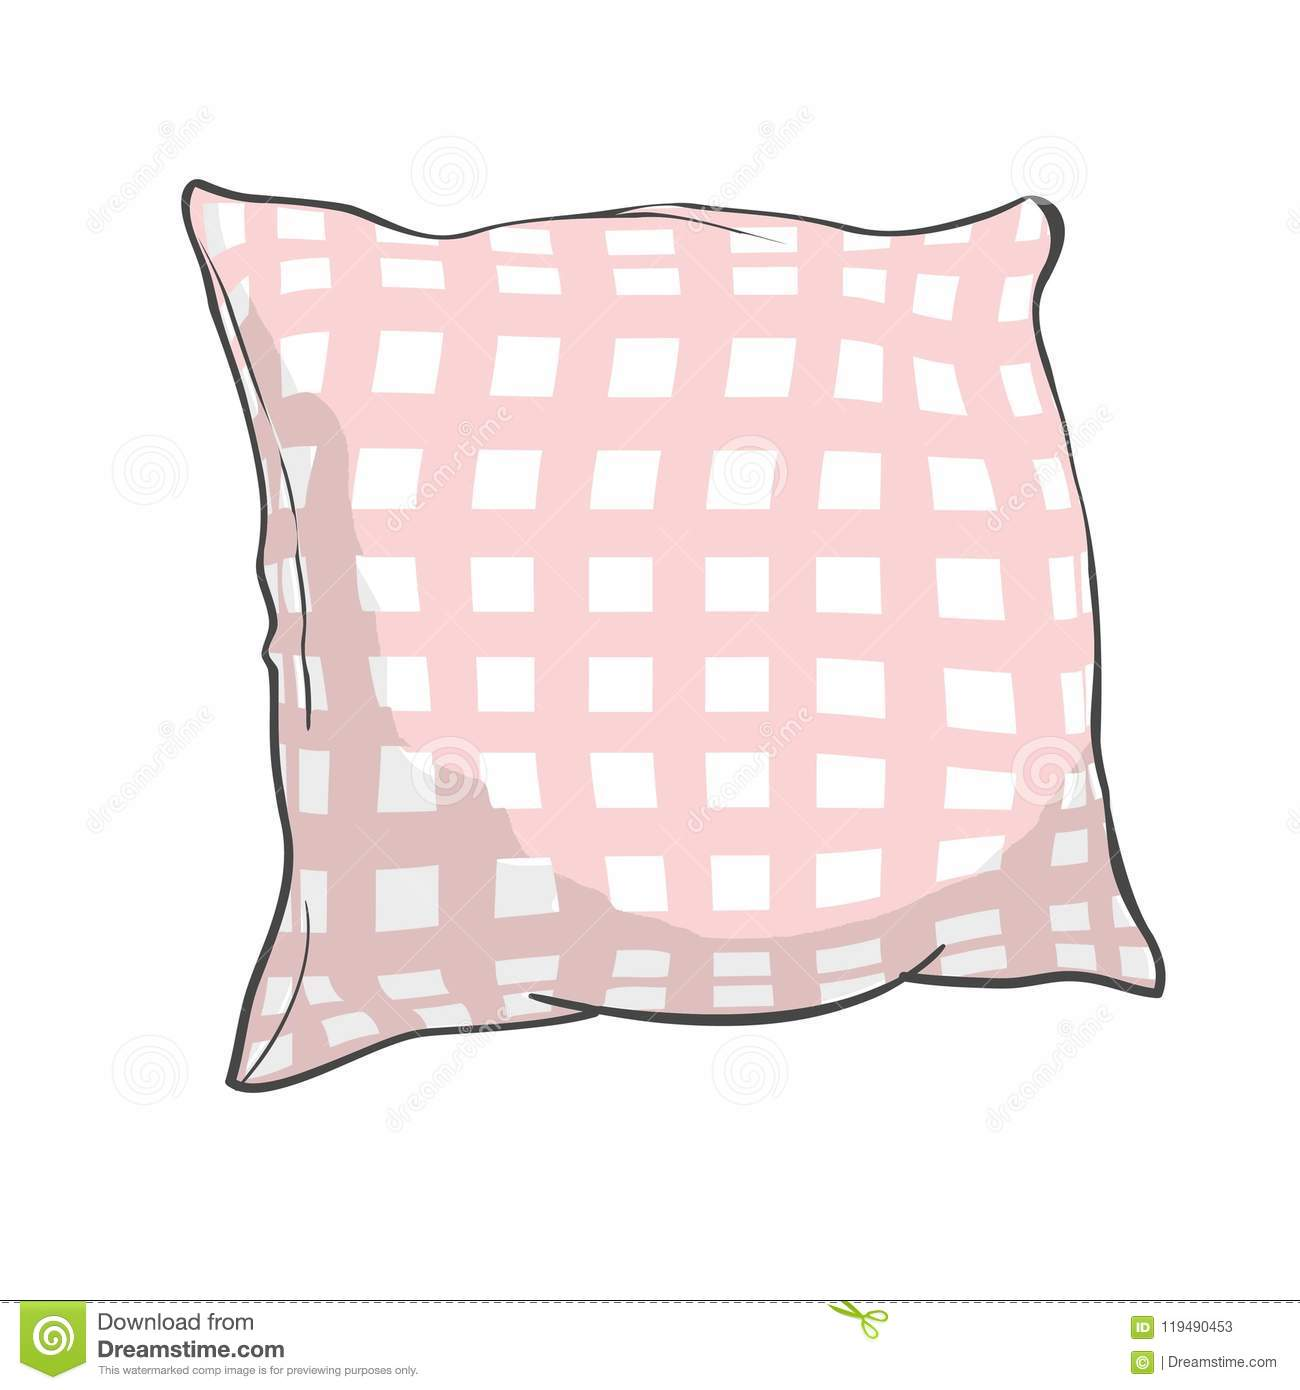 https www dreamstime com sketch vector illustration pillow art pillow isolated white pillow bed pillow bed comfort design domestic fabric feather image119490453